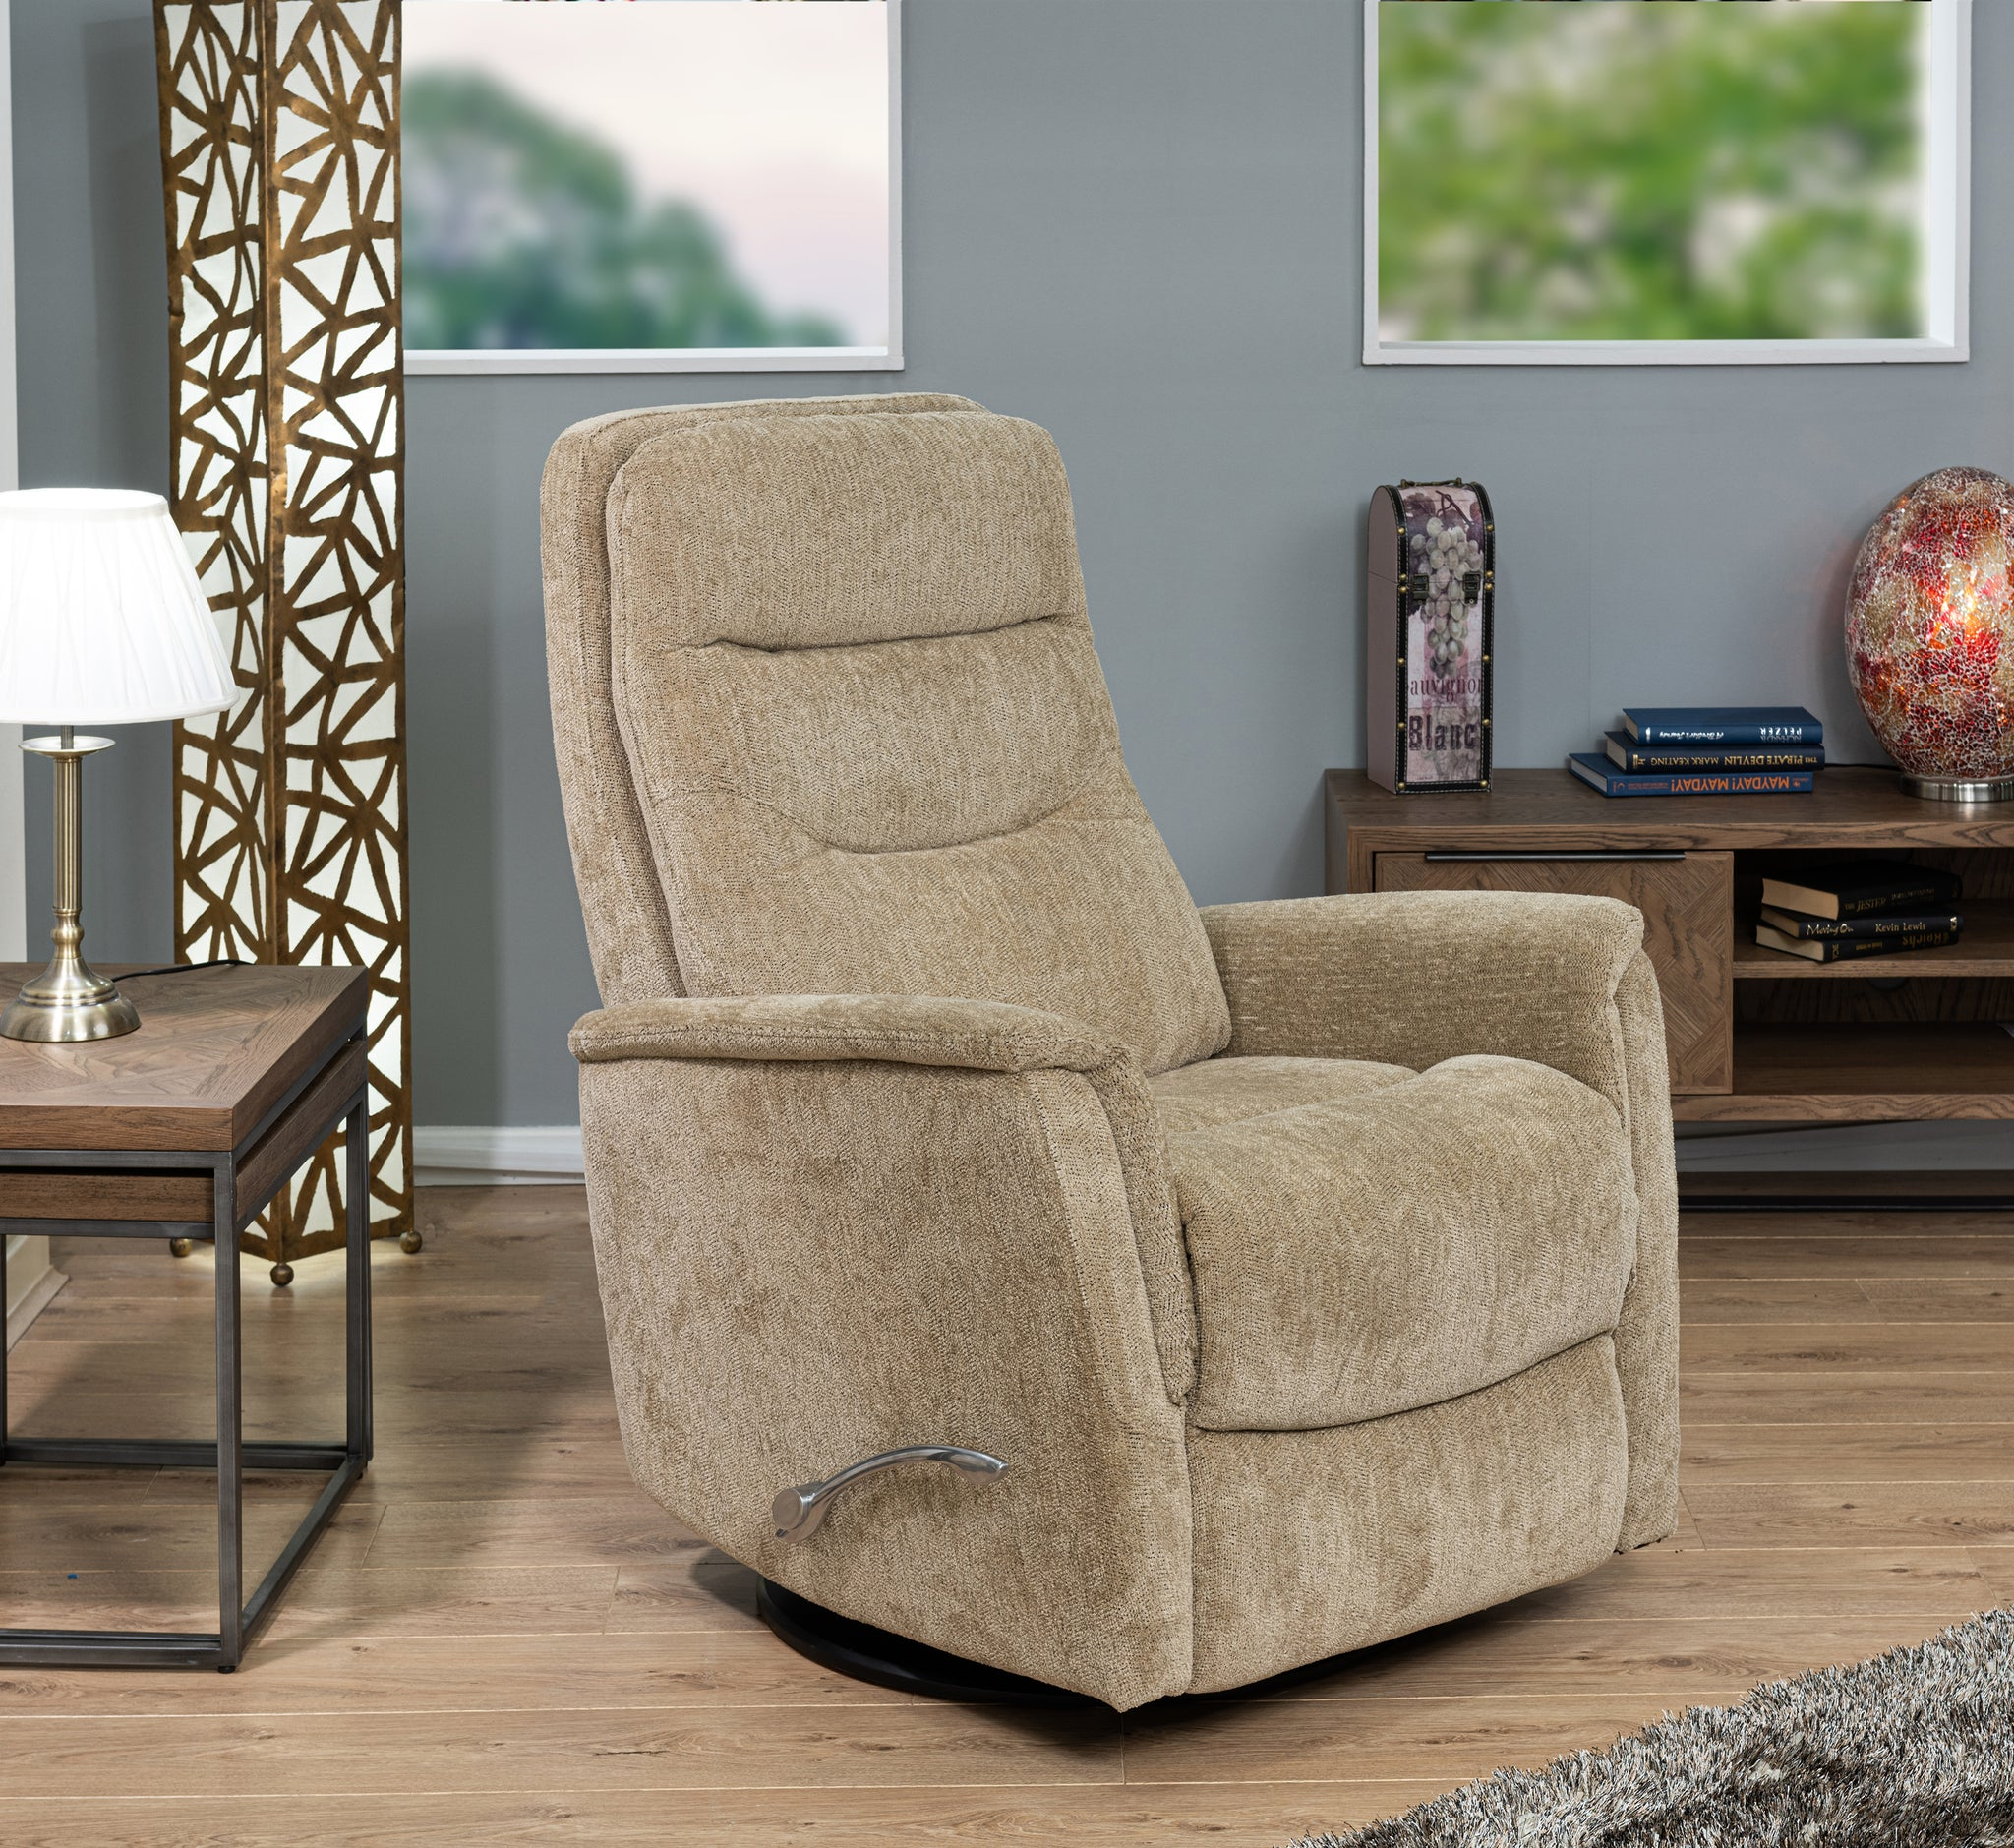 Lazzio Swivel Chair With Handle